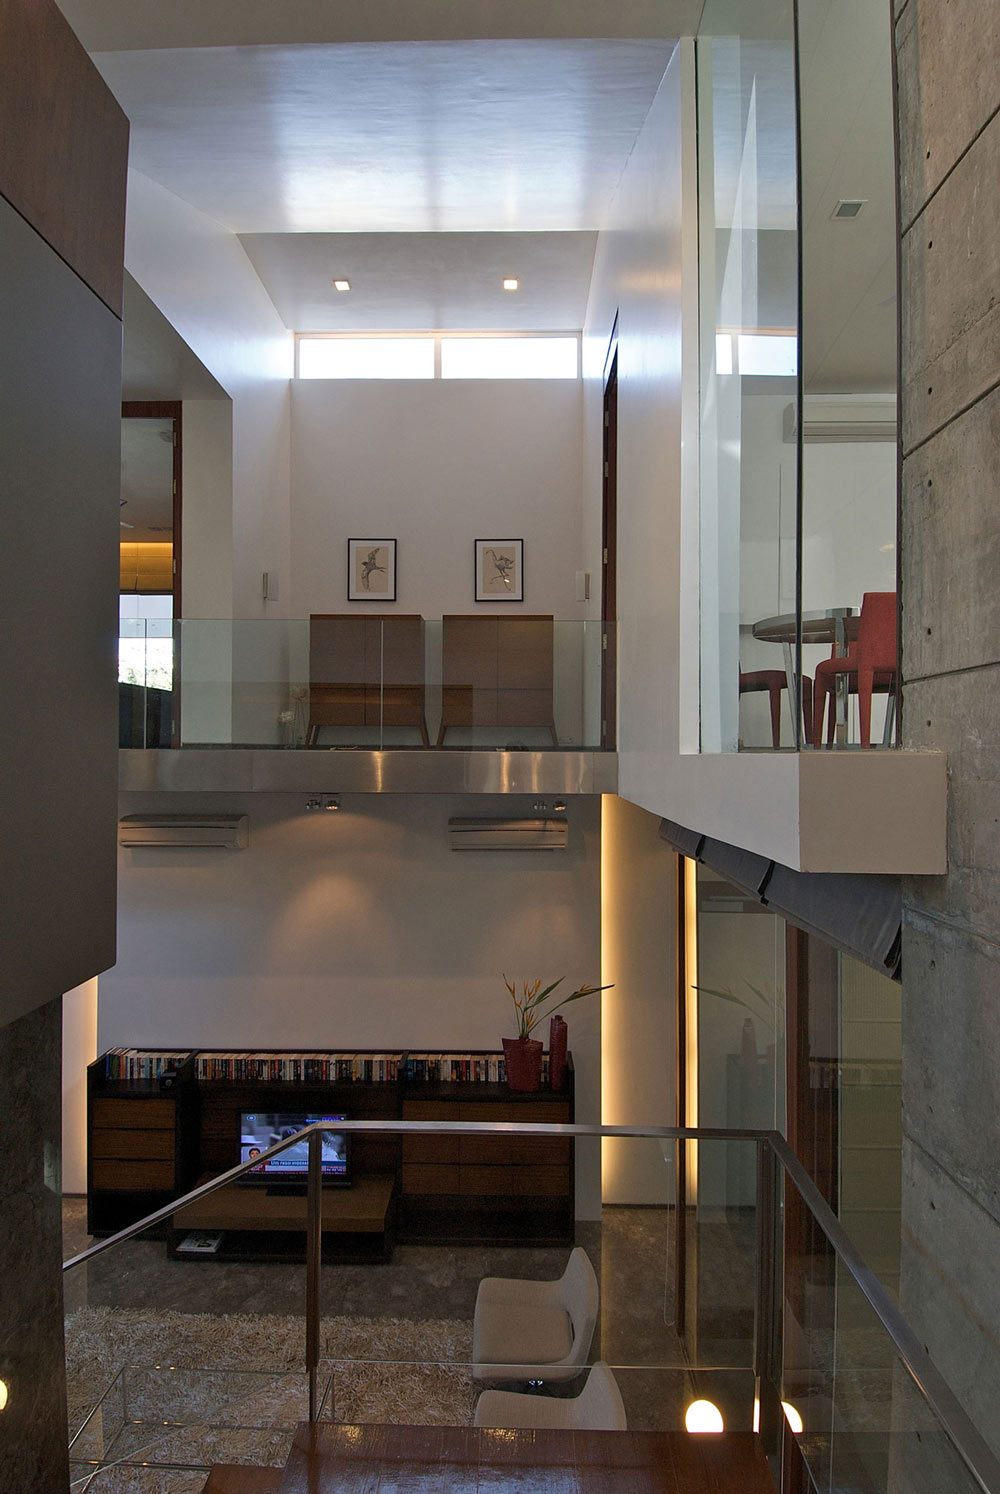 Glass Walls, Poona House in Mumbai, India by Rajiv Saini